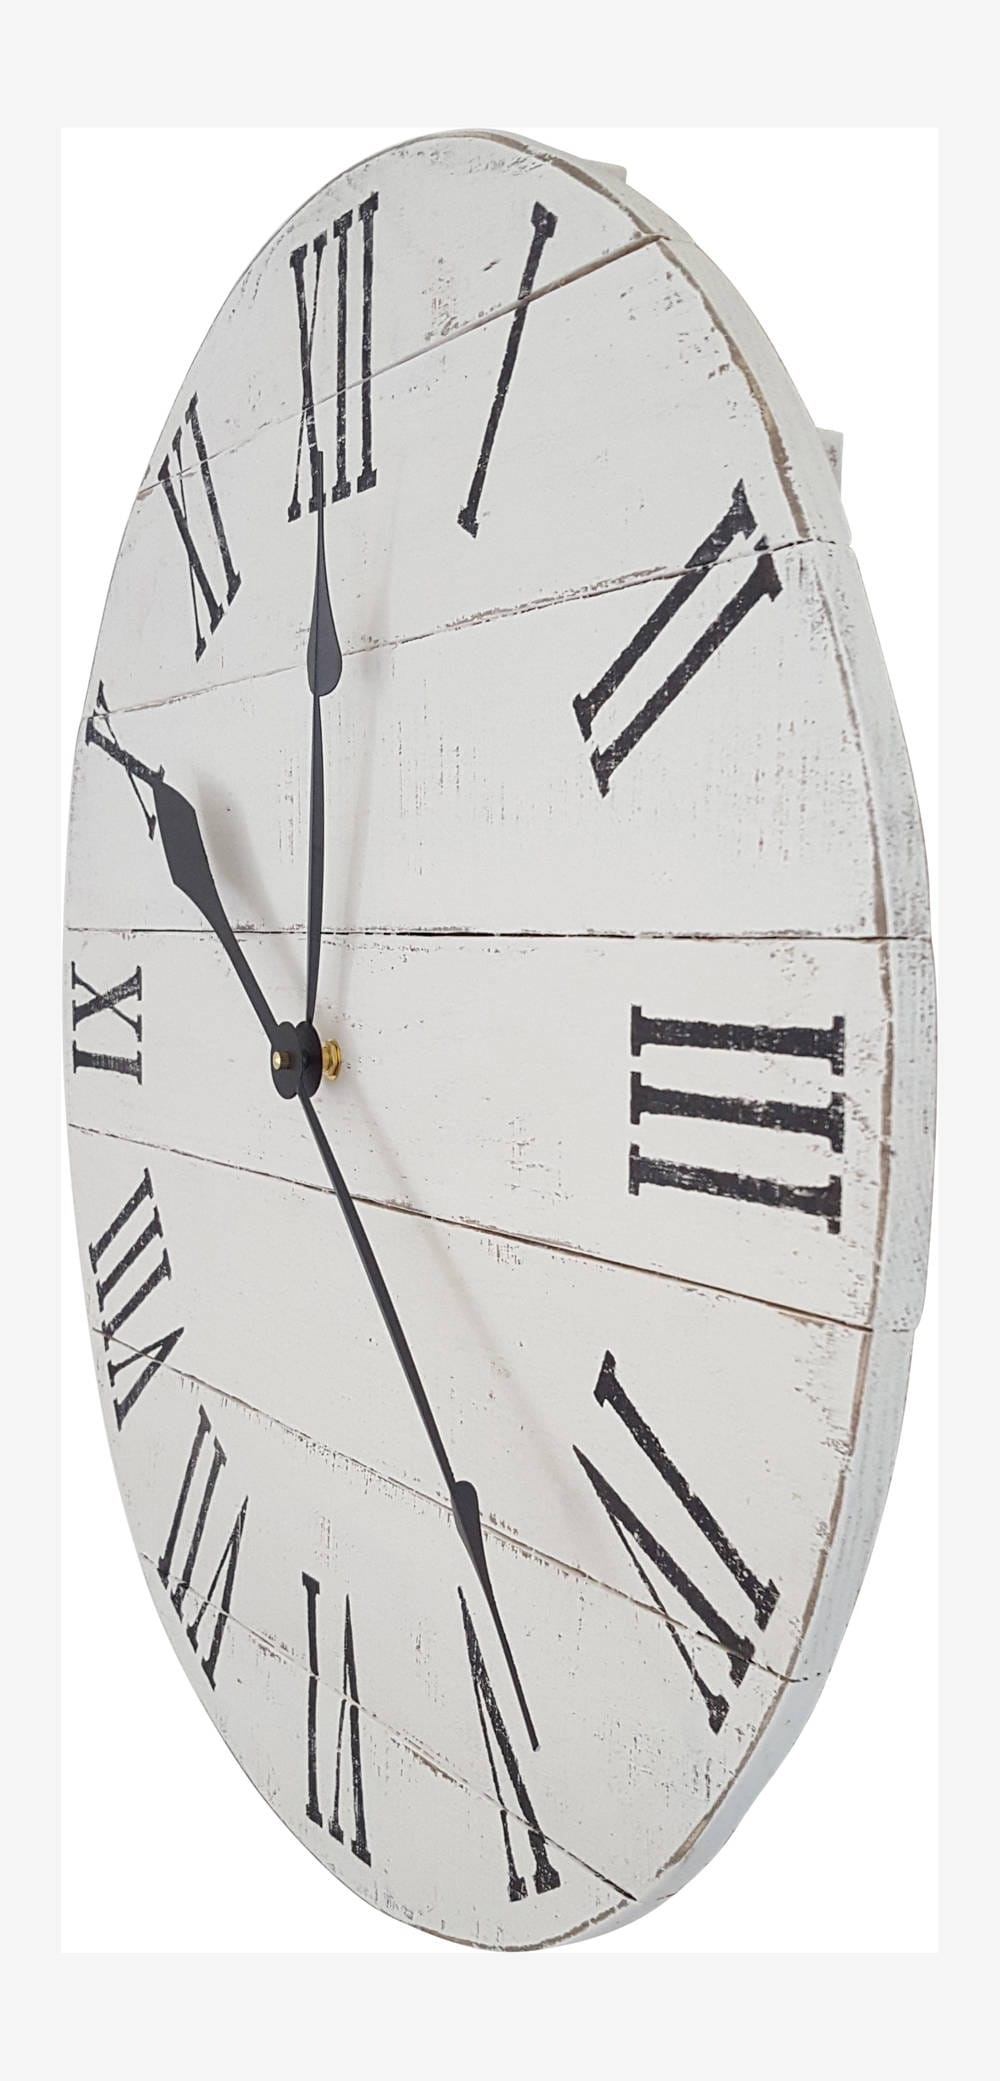 Wood clock pallet clock reclaimed wood clock roman numeral wood clock pallet clock reclaimed wood clock roman numeral clock white wall clock distressed clock rustic decor amipublicfo Image collections